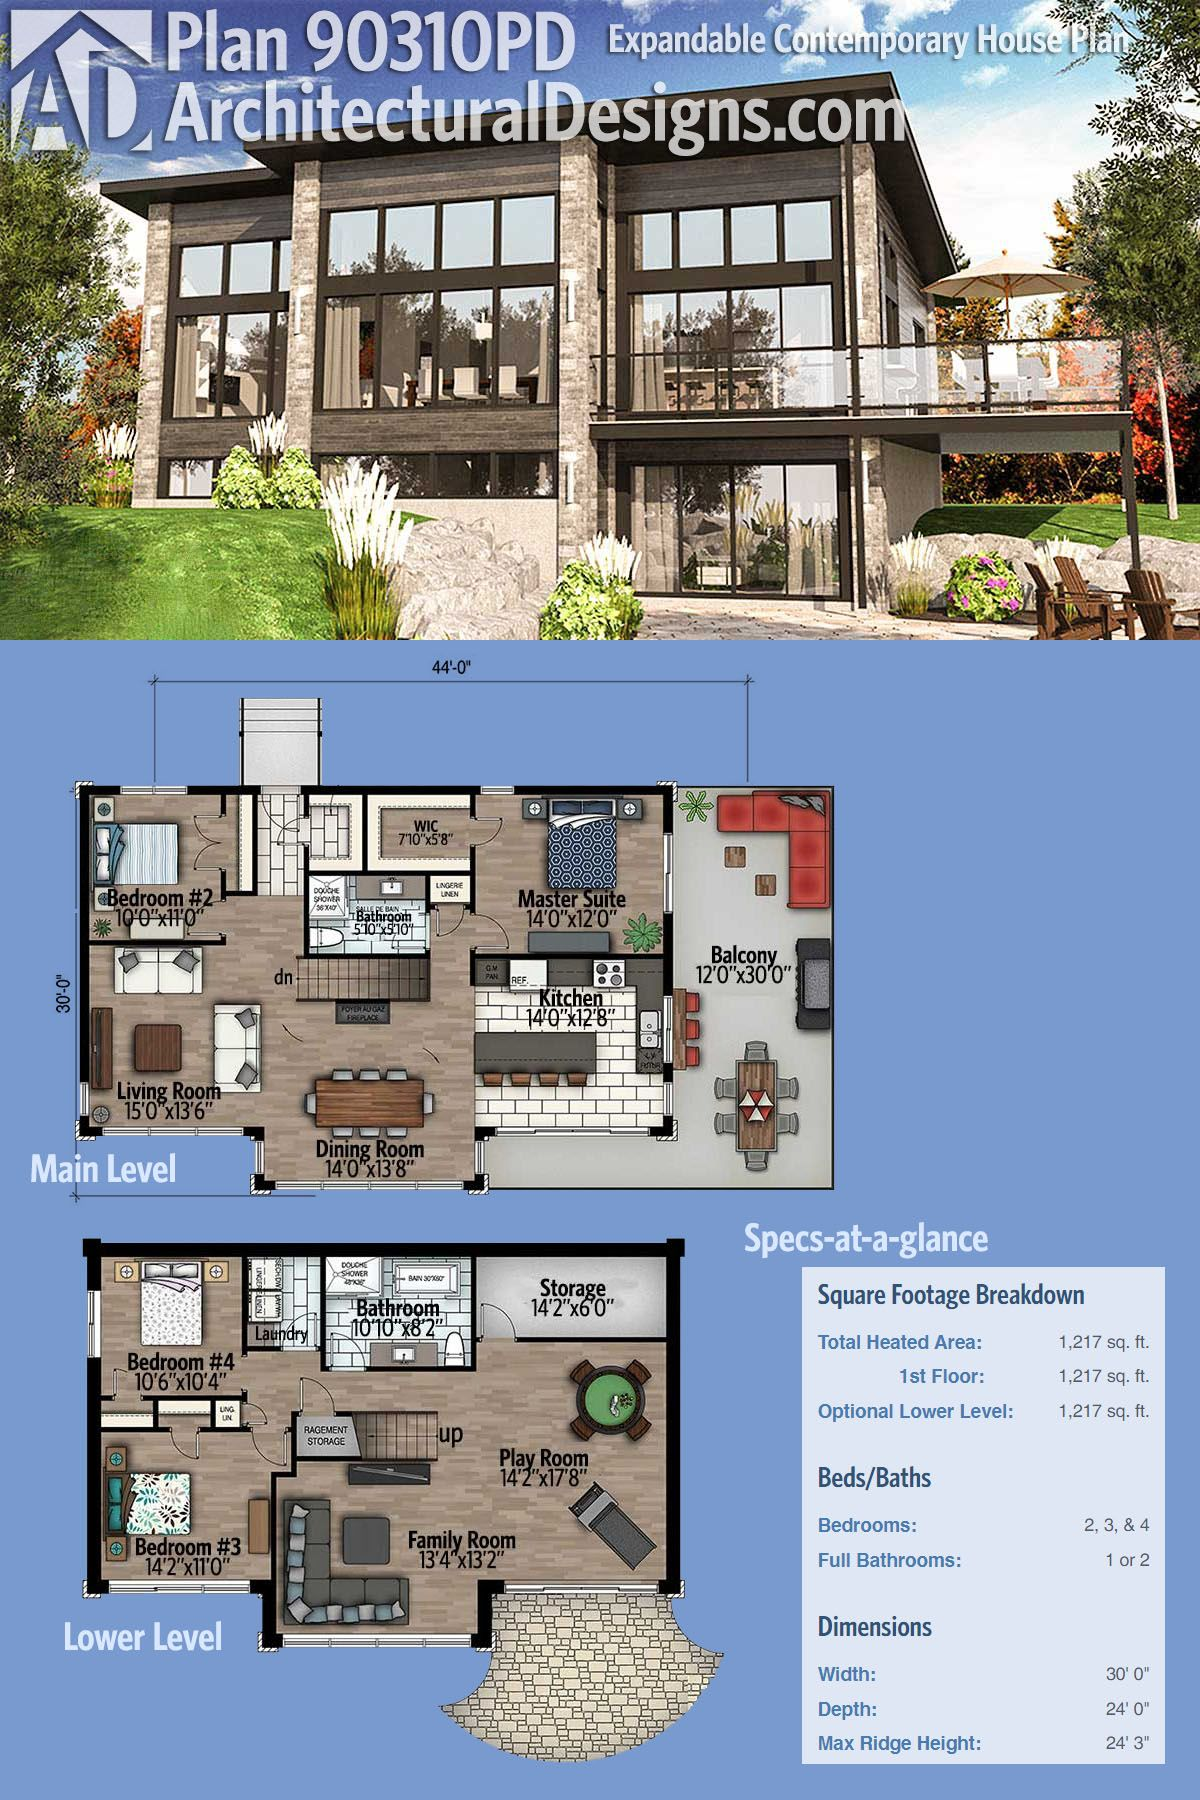 Architectural Designs Modern House Plan 90310PD gives